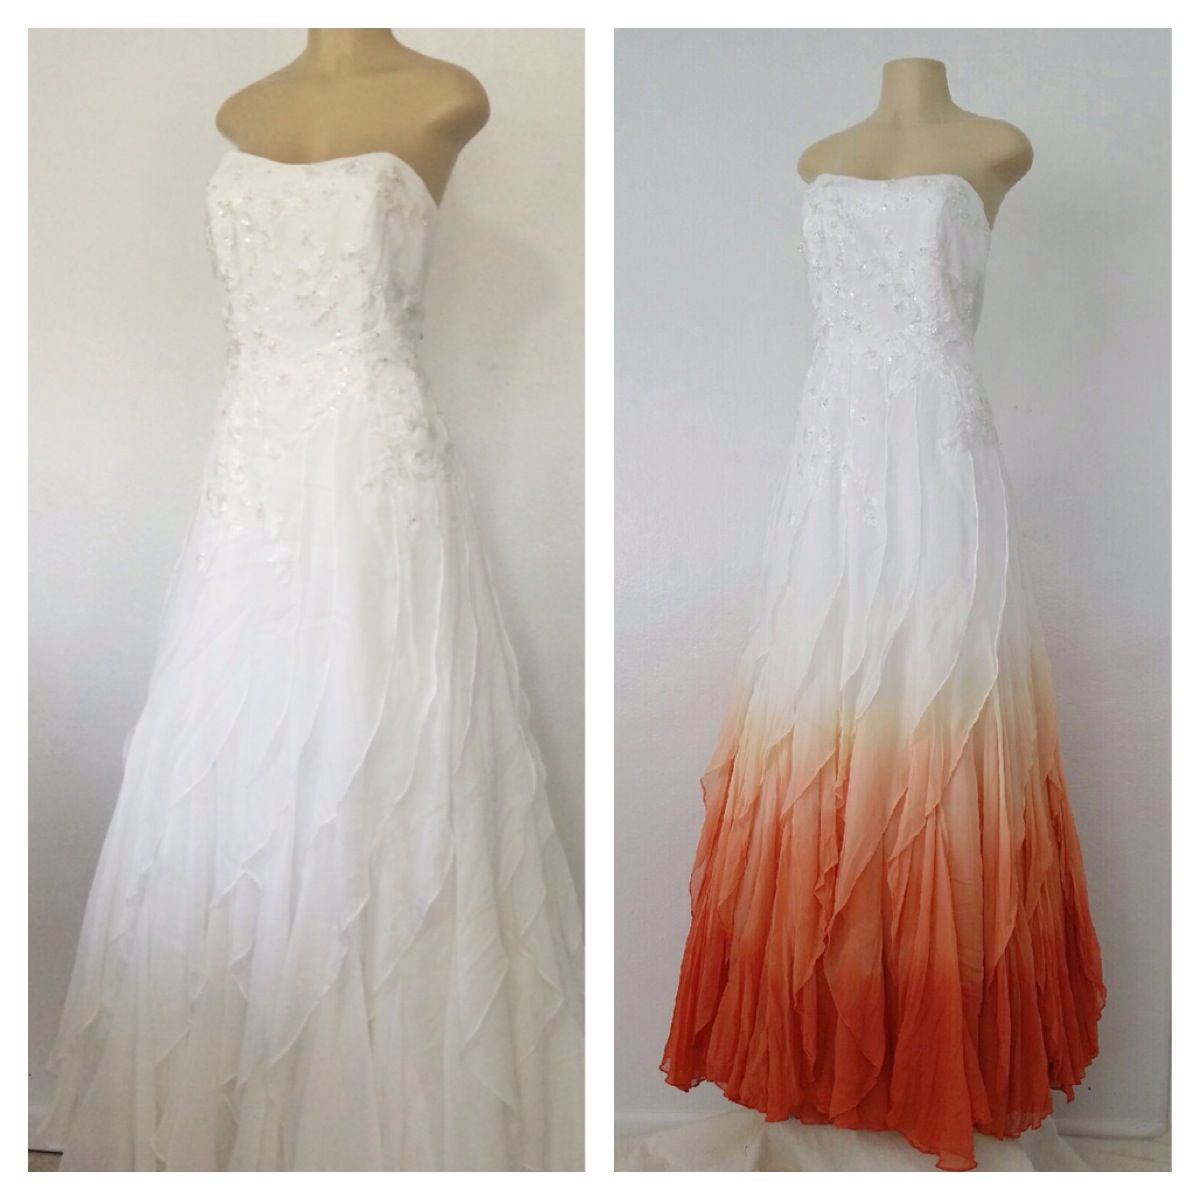 87db9584d82 We just love this orange ombre dyed effect on this wedding gown! Alteria s  Dye Services are spectacular! Visit www.AlteriaOnline.com for more info